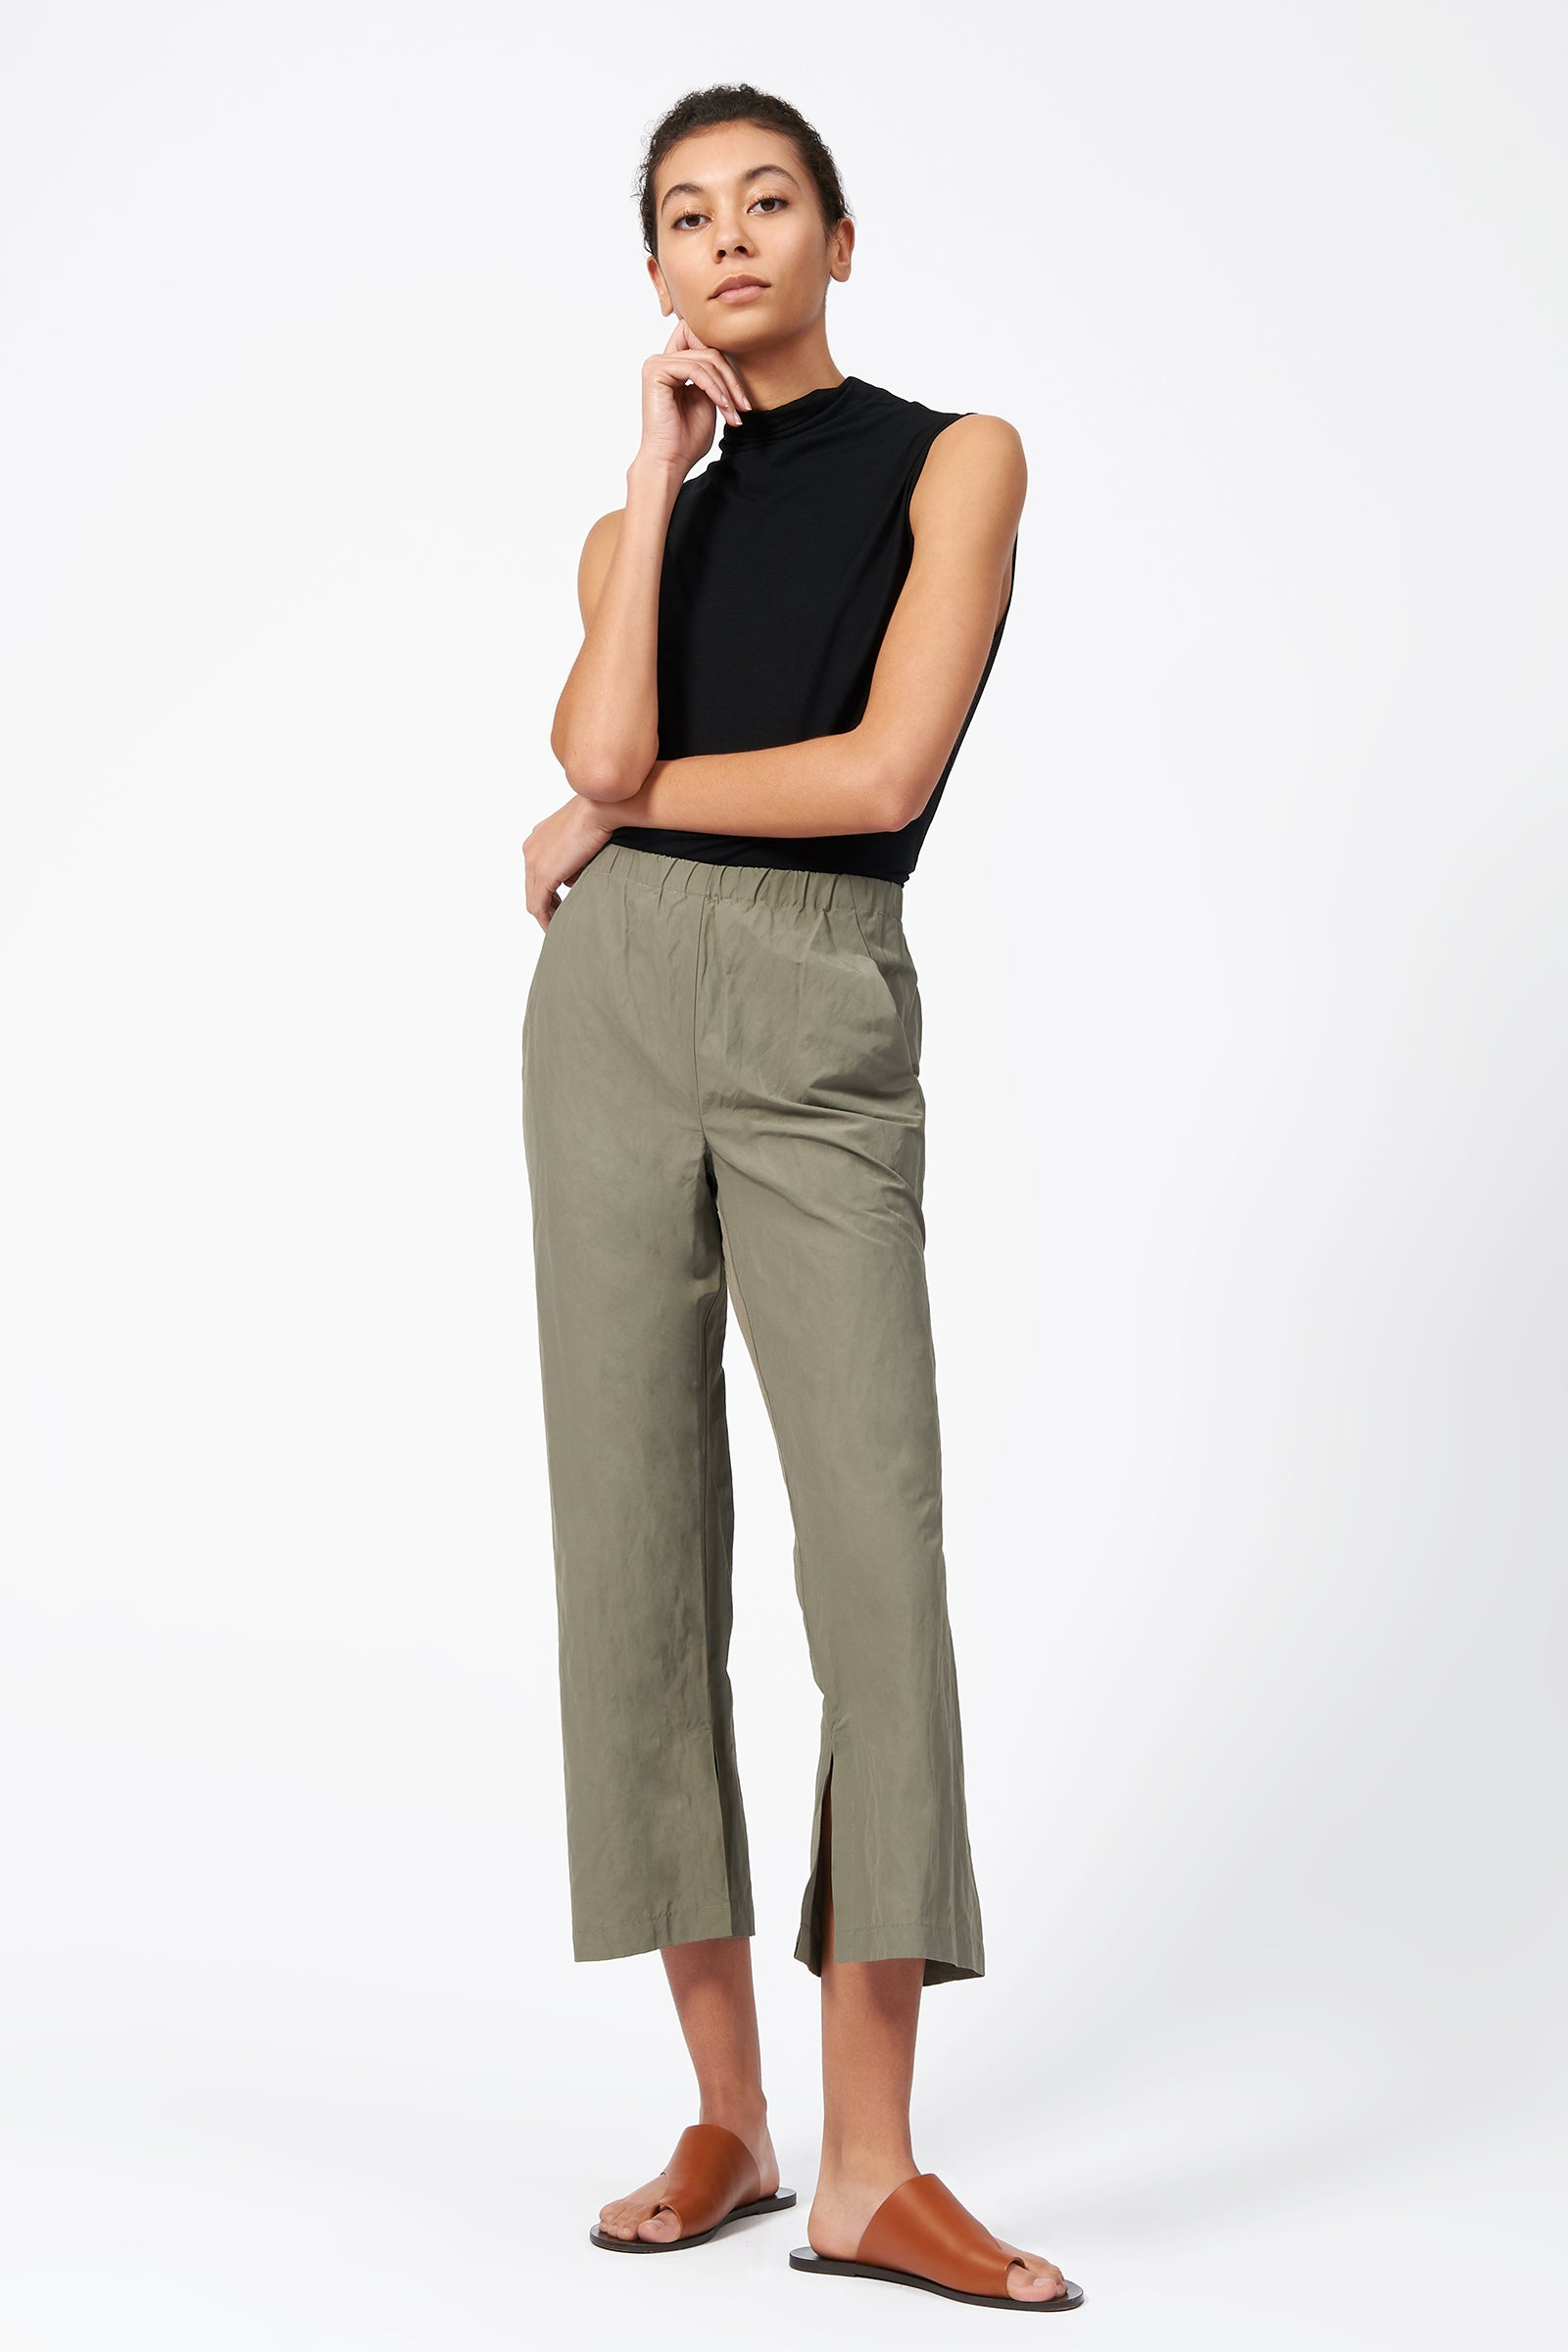 Kal Rieman Split Hem Capri in Olive on Model Full Front View